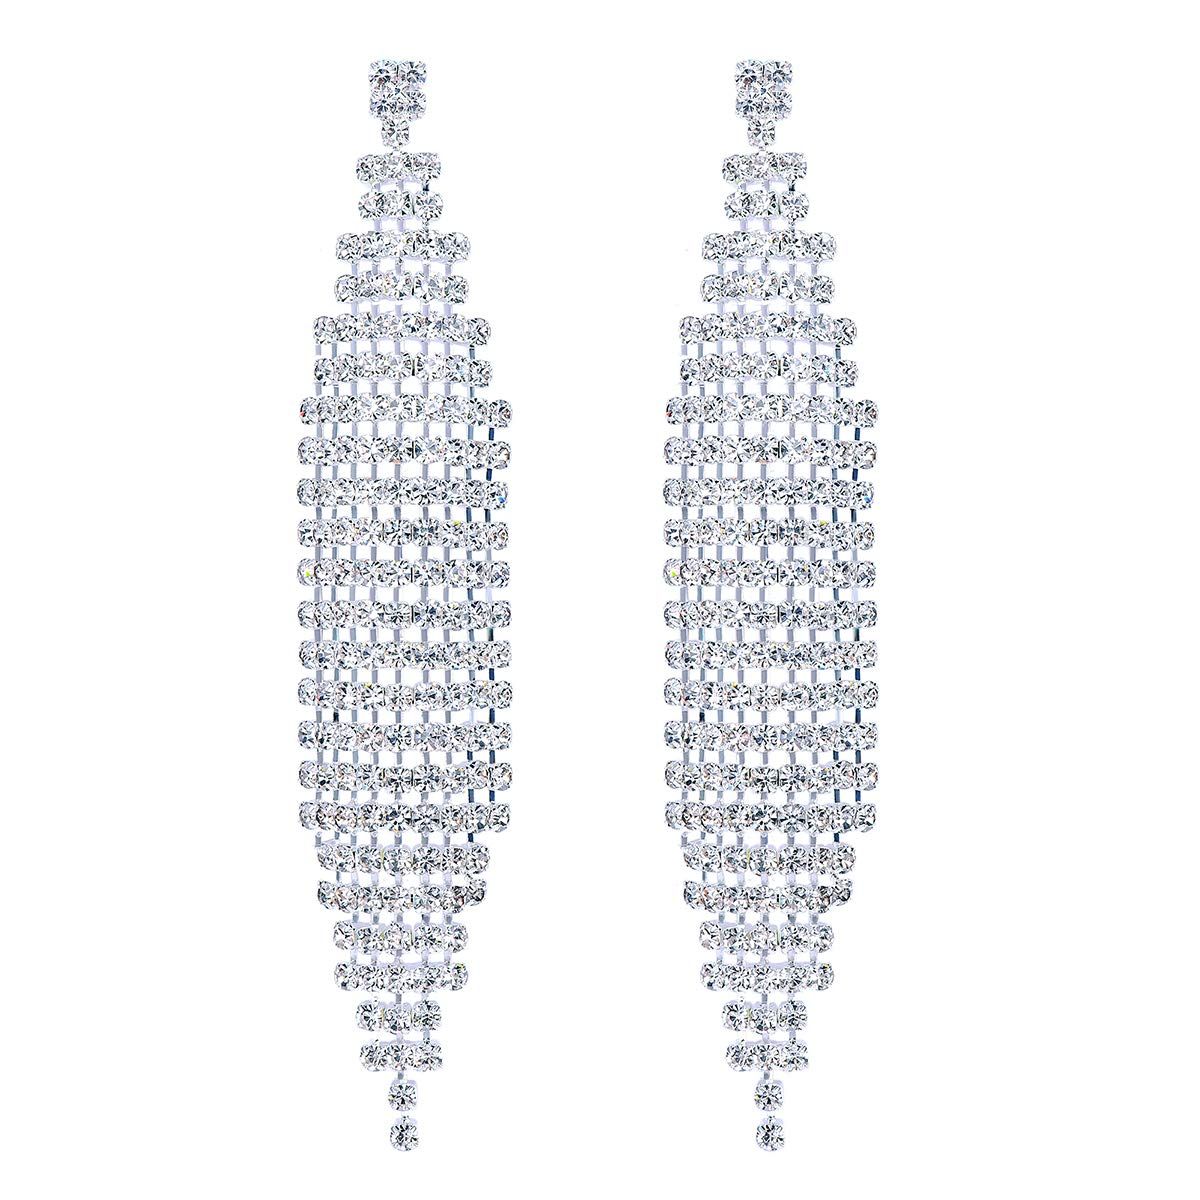 FOCALOOK Rhinestone White Gold Plated Bohemia Long Tassels Link Fringe Dangle Wedding Earrings for Bride